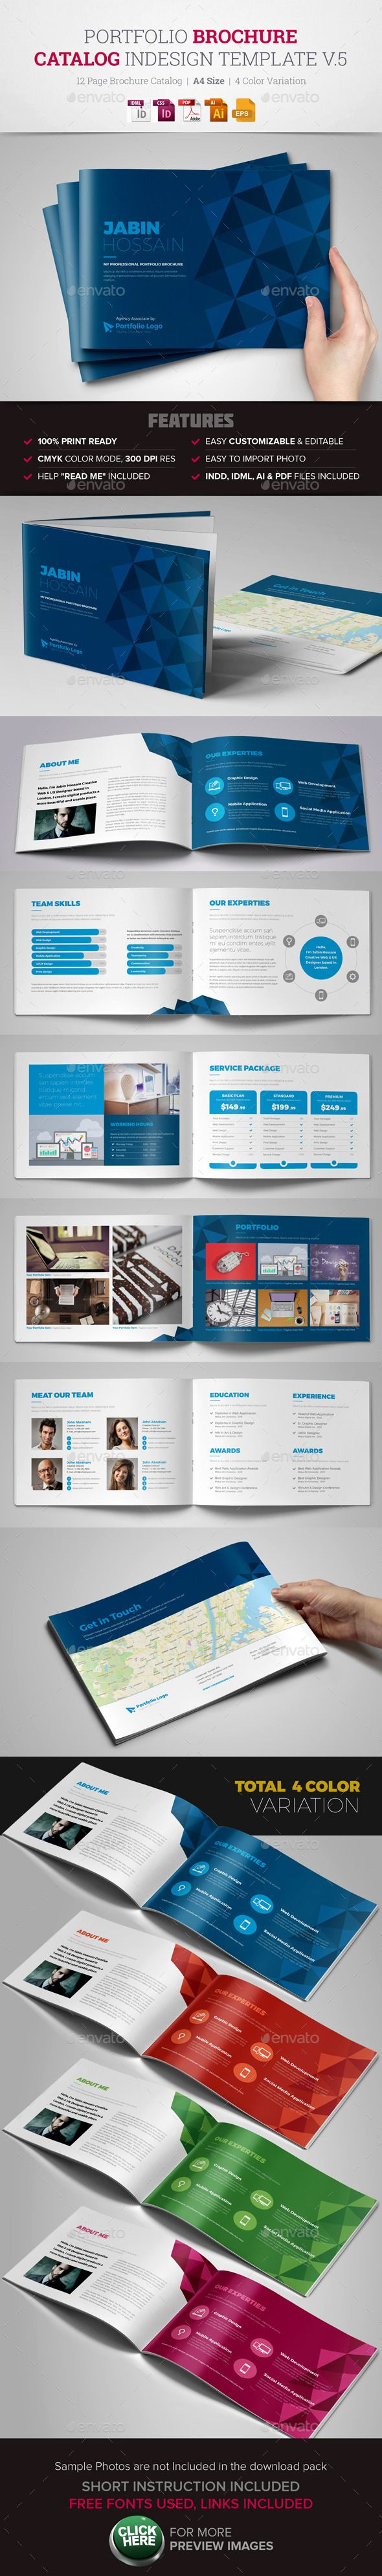 Portfolio Brochure InDesign Template #design Buy Now: http://graphicriver.net/item/portfolio-brochure-indesign-template-v5-/12858255?ref=ksioks